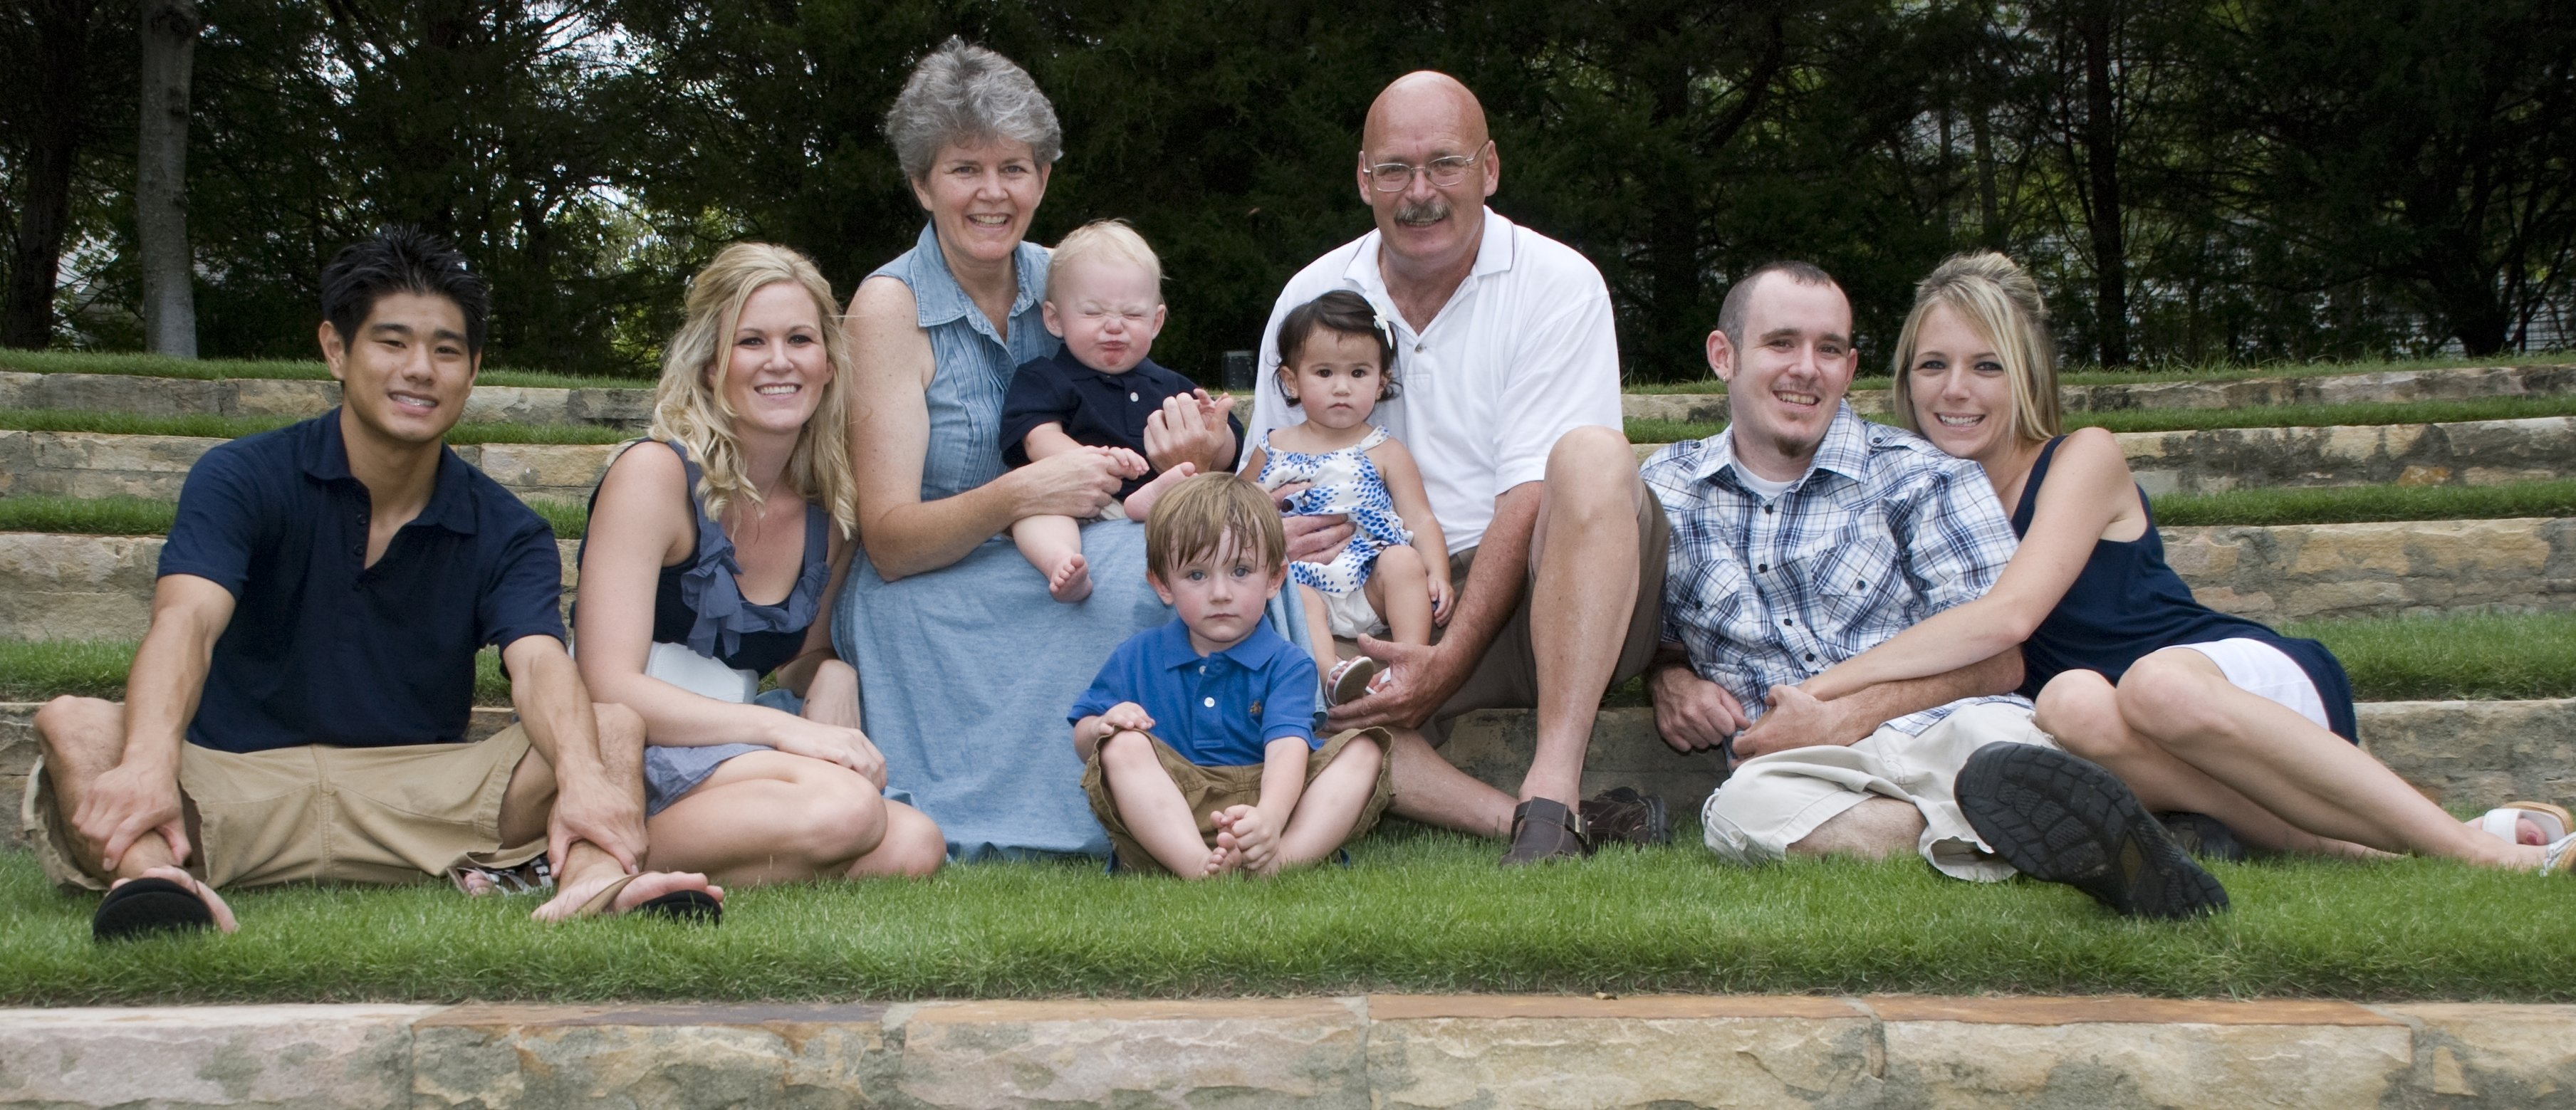 large family photo shoot (tips & ideas) | the design, photo and